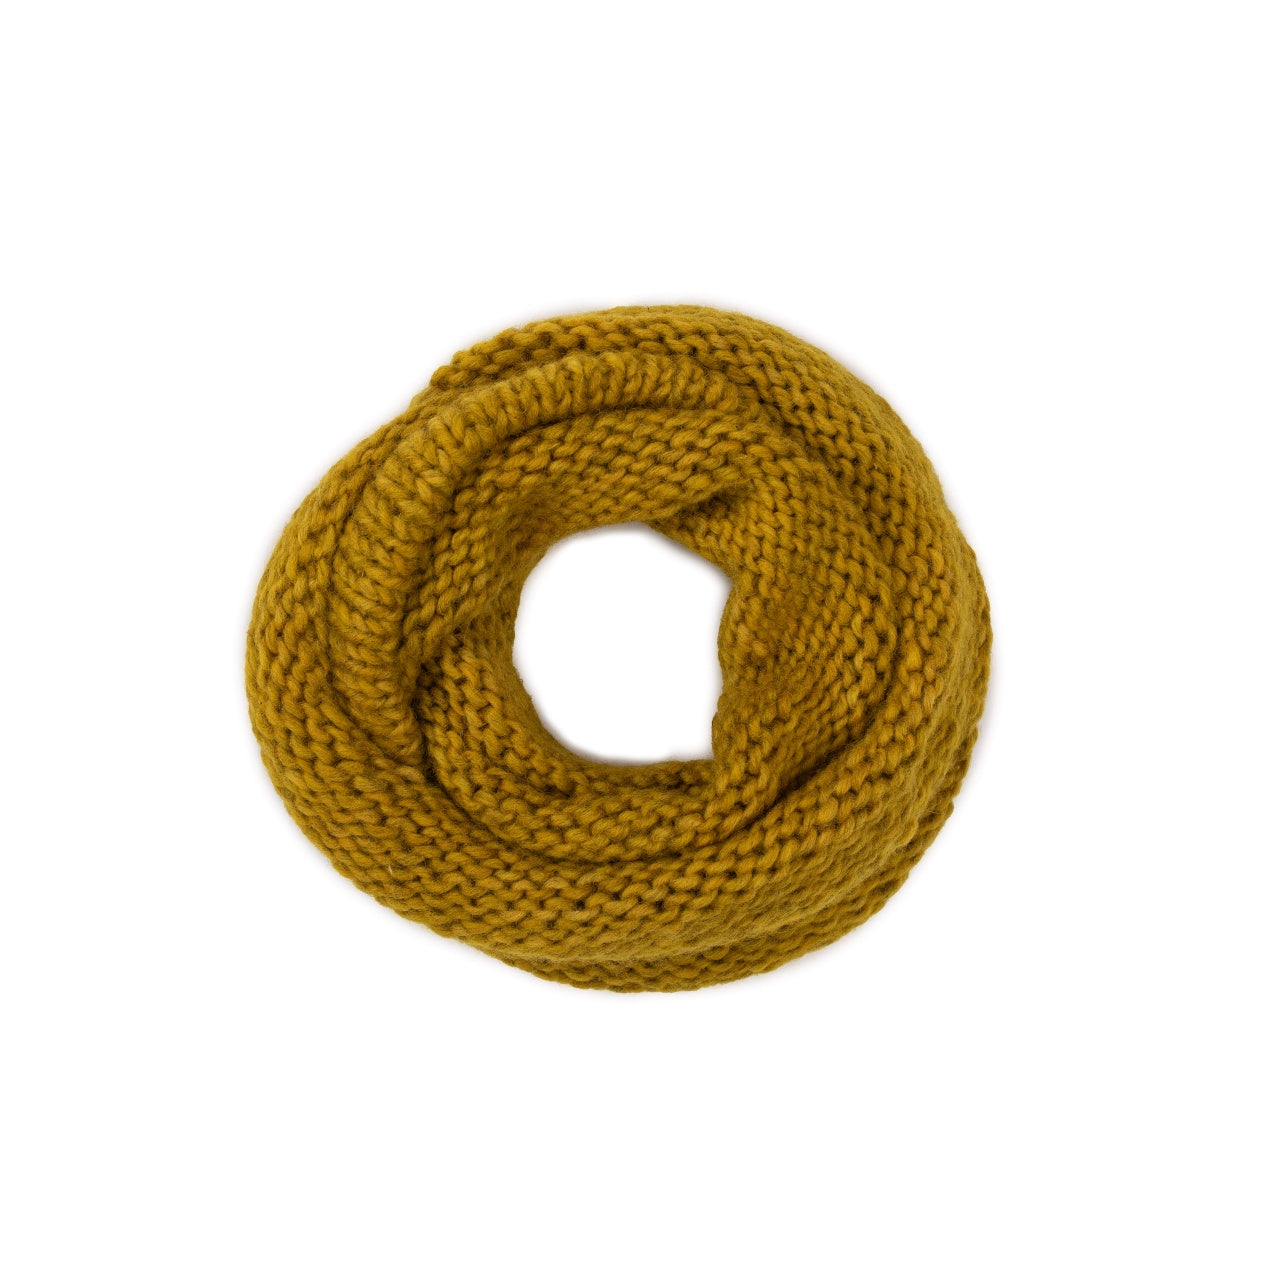 Aura scarf in yellow